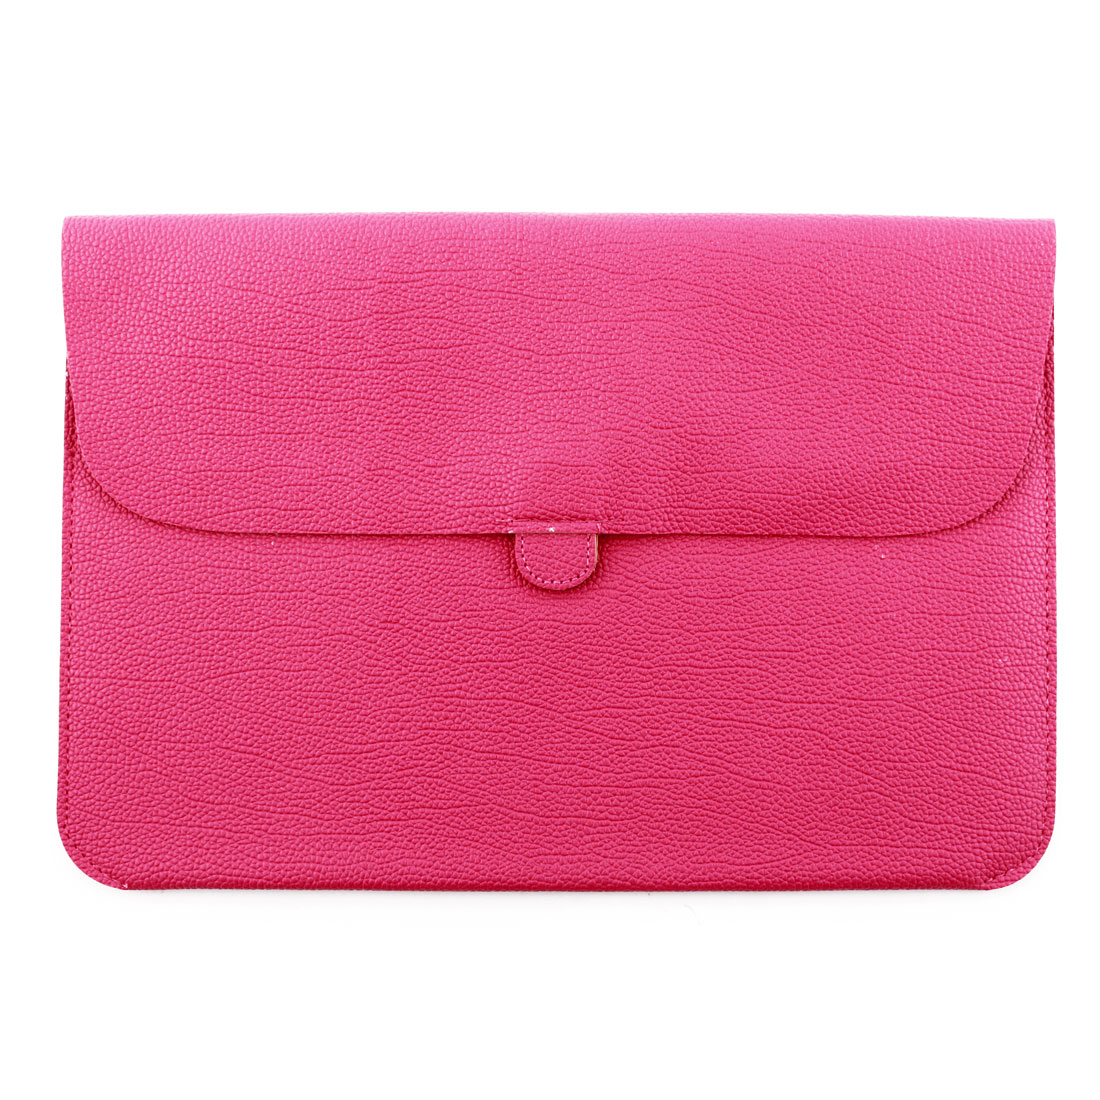 PC Notebook PU Leather Water Resistant Pouch Laptop Sleeve Magenta for MacBook 12 11.6 Inch